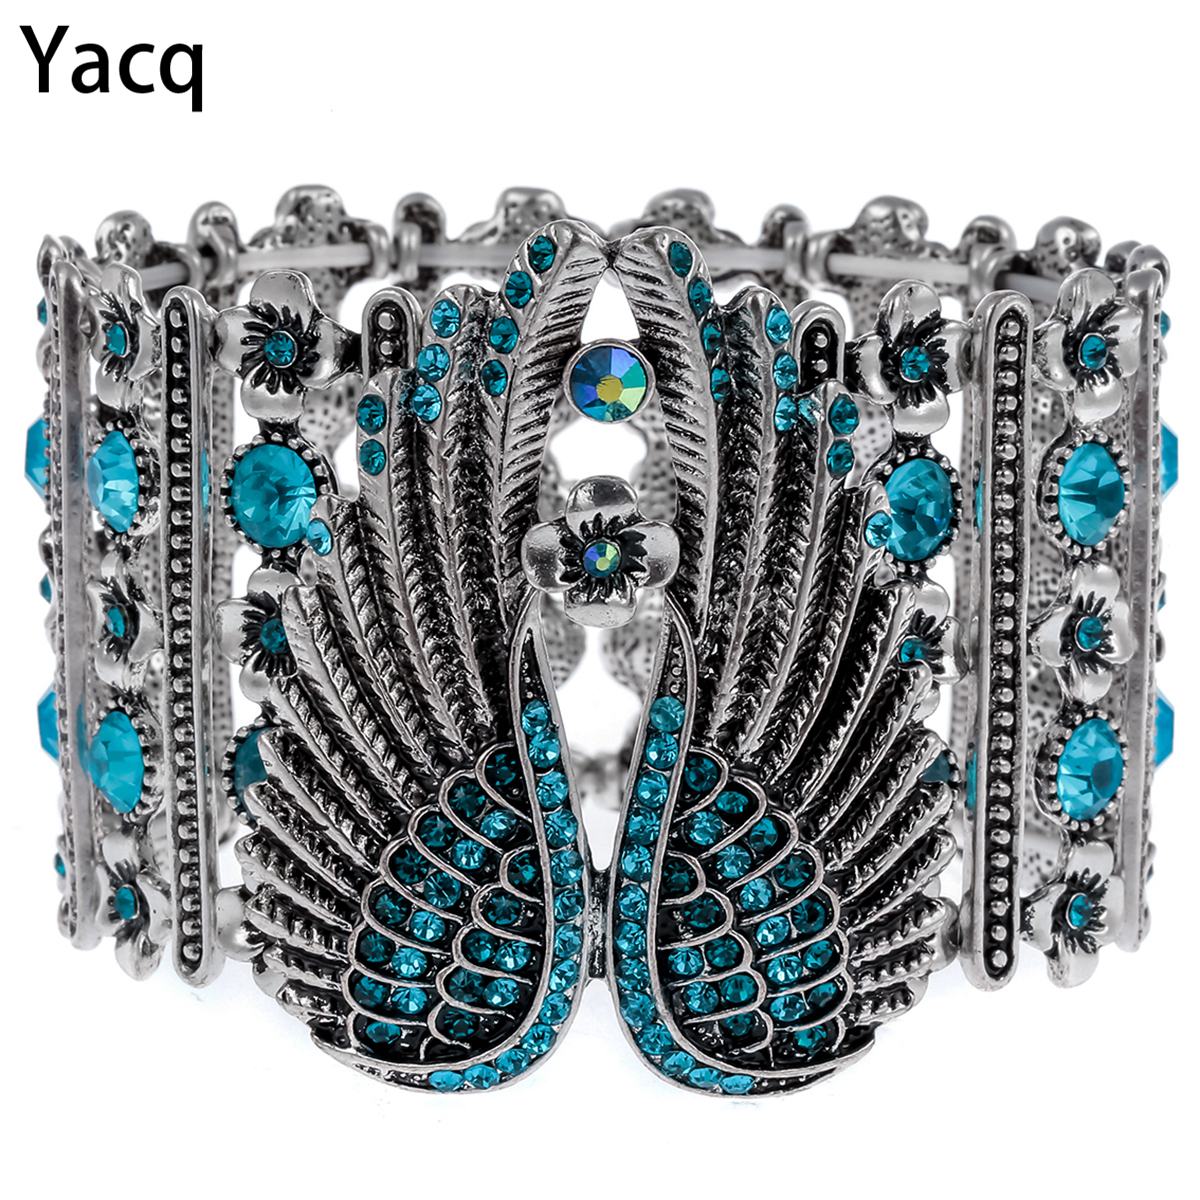 YACQ Guardian Angel Wings Stretch Cuff pulsera para mujeres Biker Crystal Punk regalo de la joyería de plata antigua Dropshipping D05